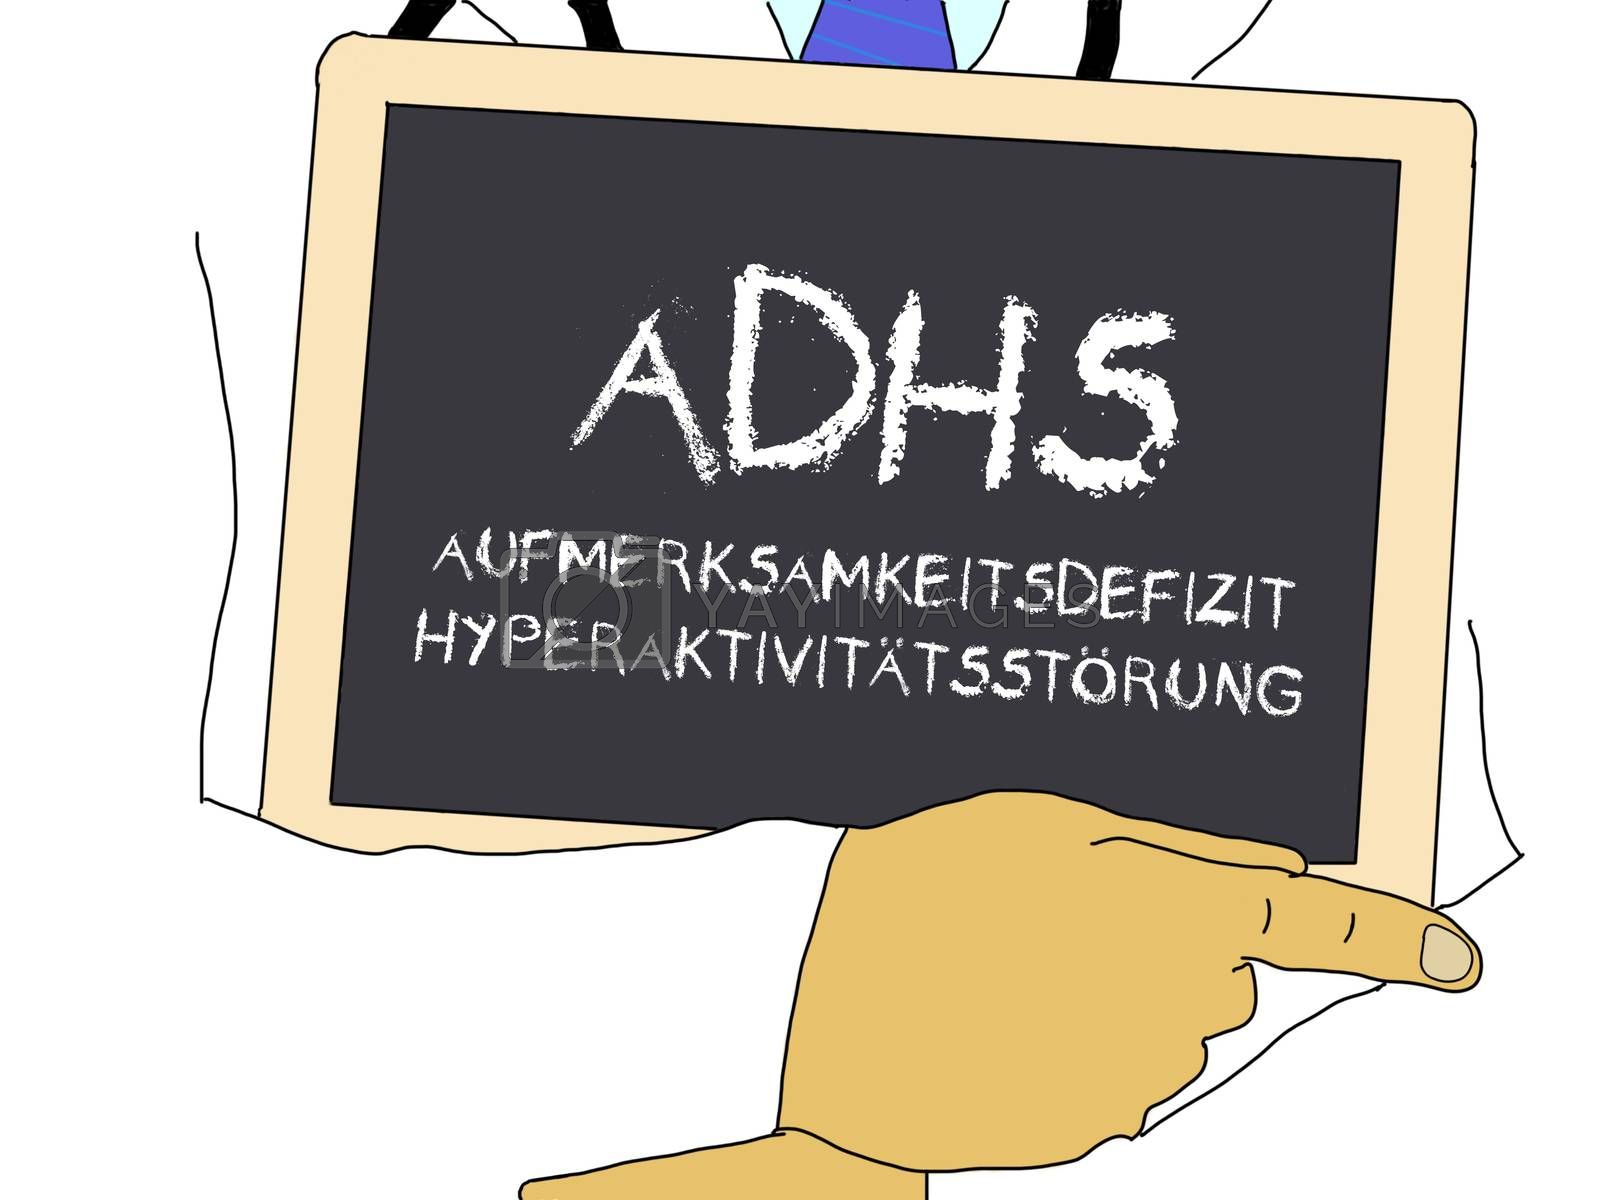 Illustration: Doctor shows information: adhd in german